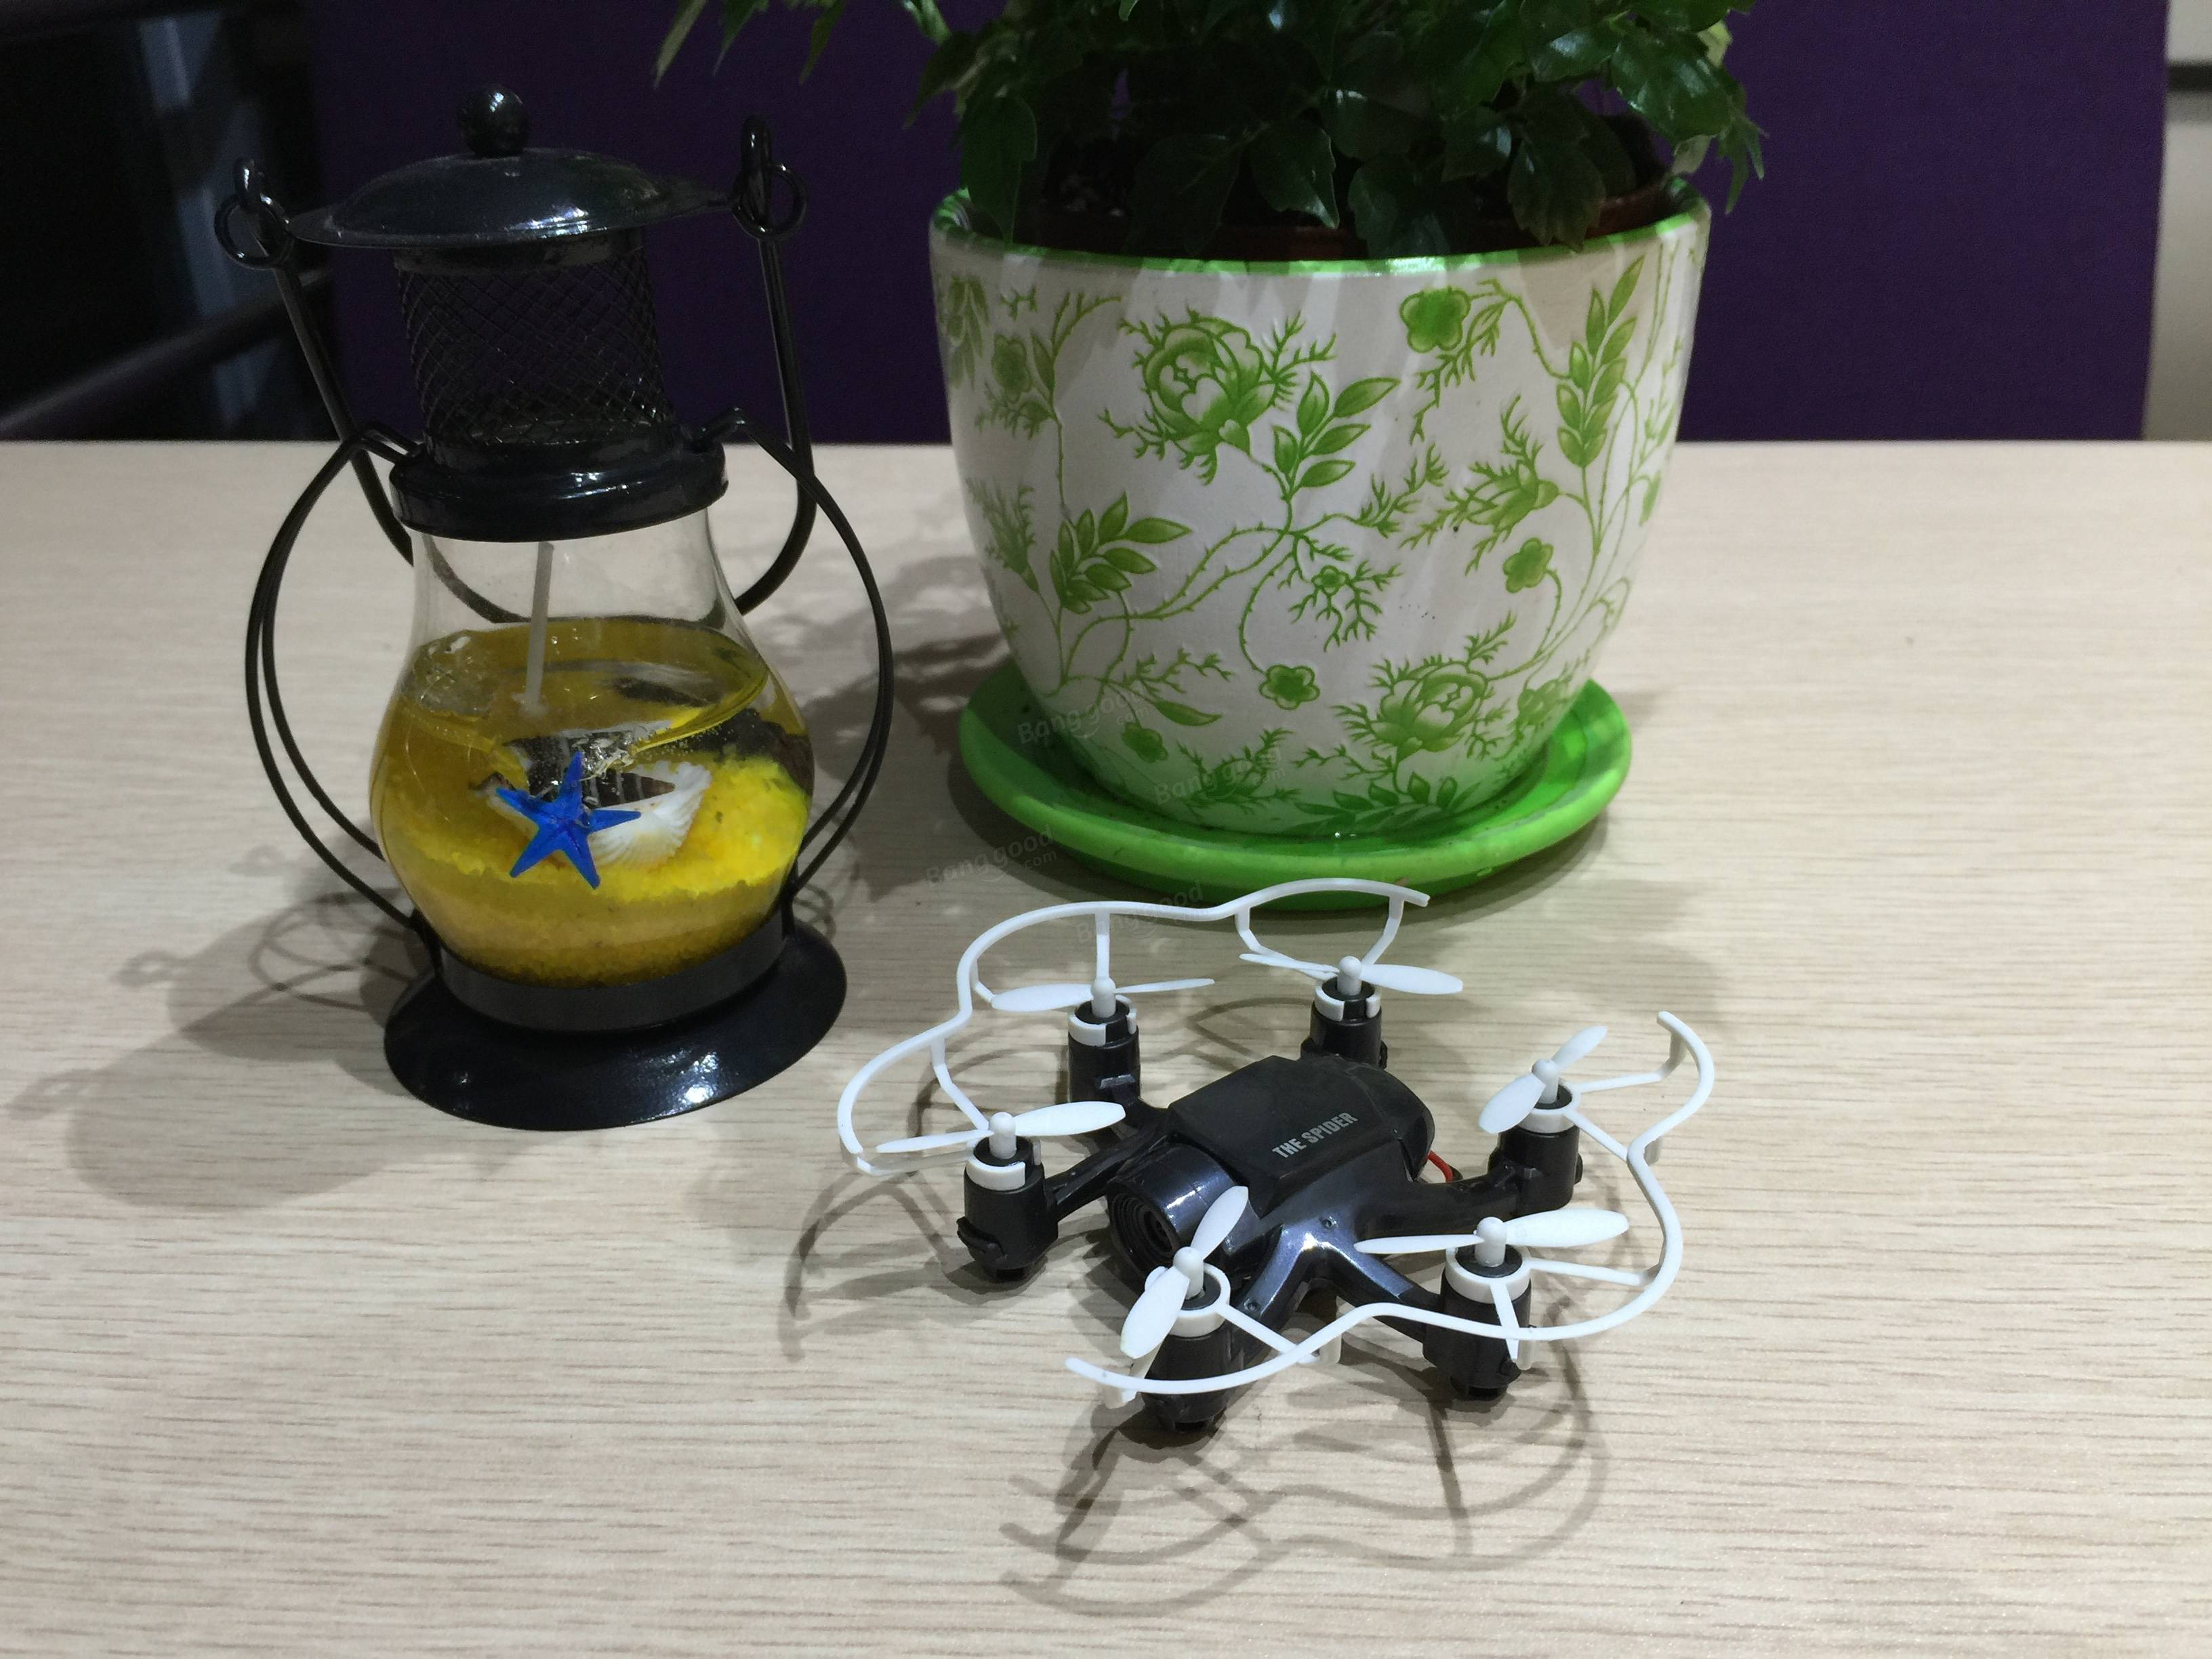 fq777 126c mini spider with 2 0mp hd camera dual mode one key to